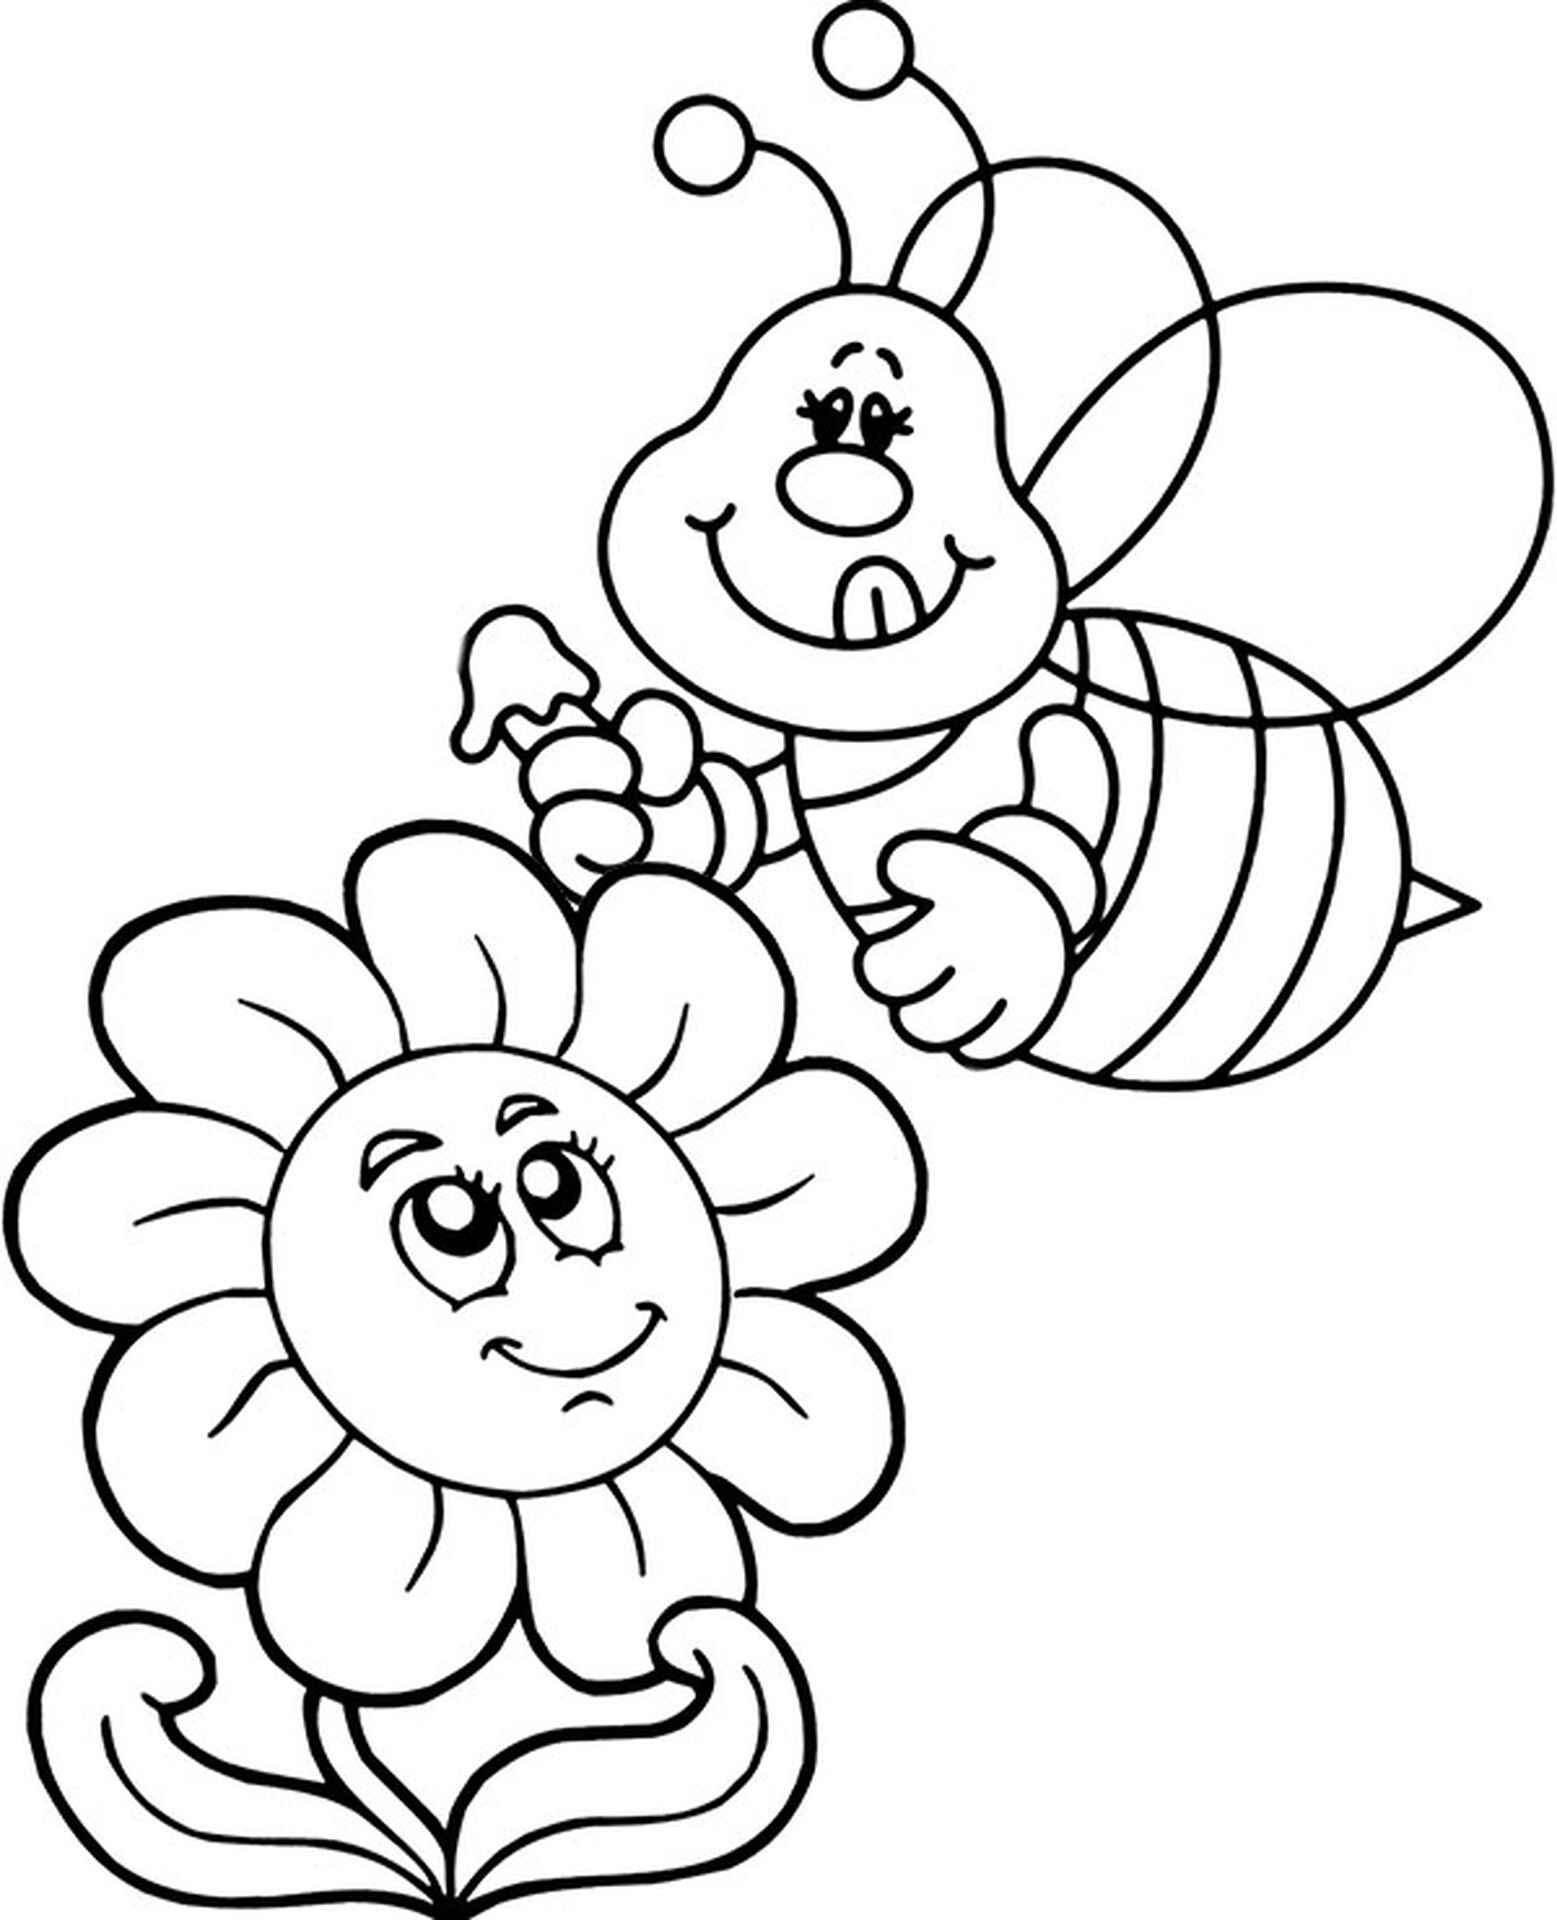 Bee And Flower Coloring Sheet